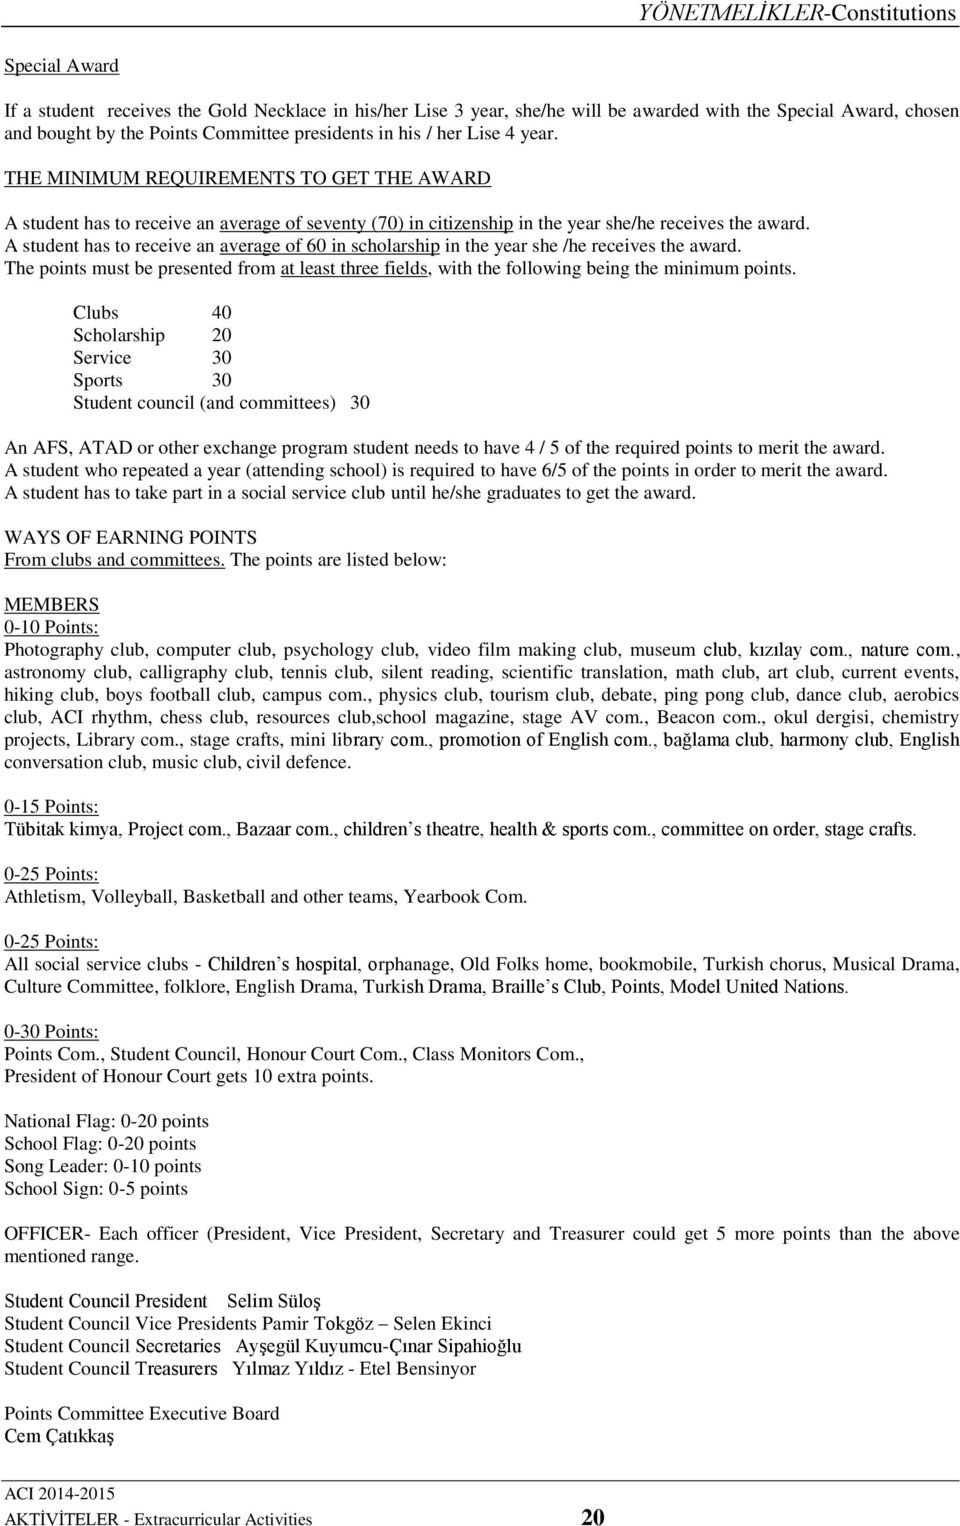 A student has to receive an average of 60 in scholarship in the year she /he receives the award. The points must be presented from at least three fields, with the following being the minimum points.